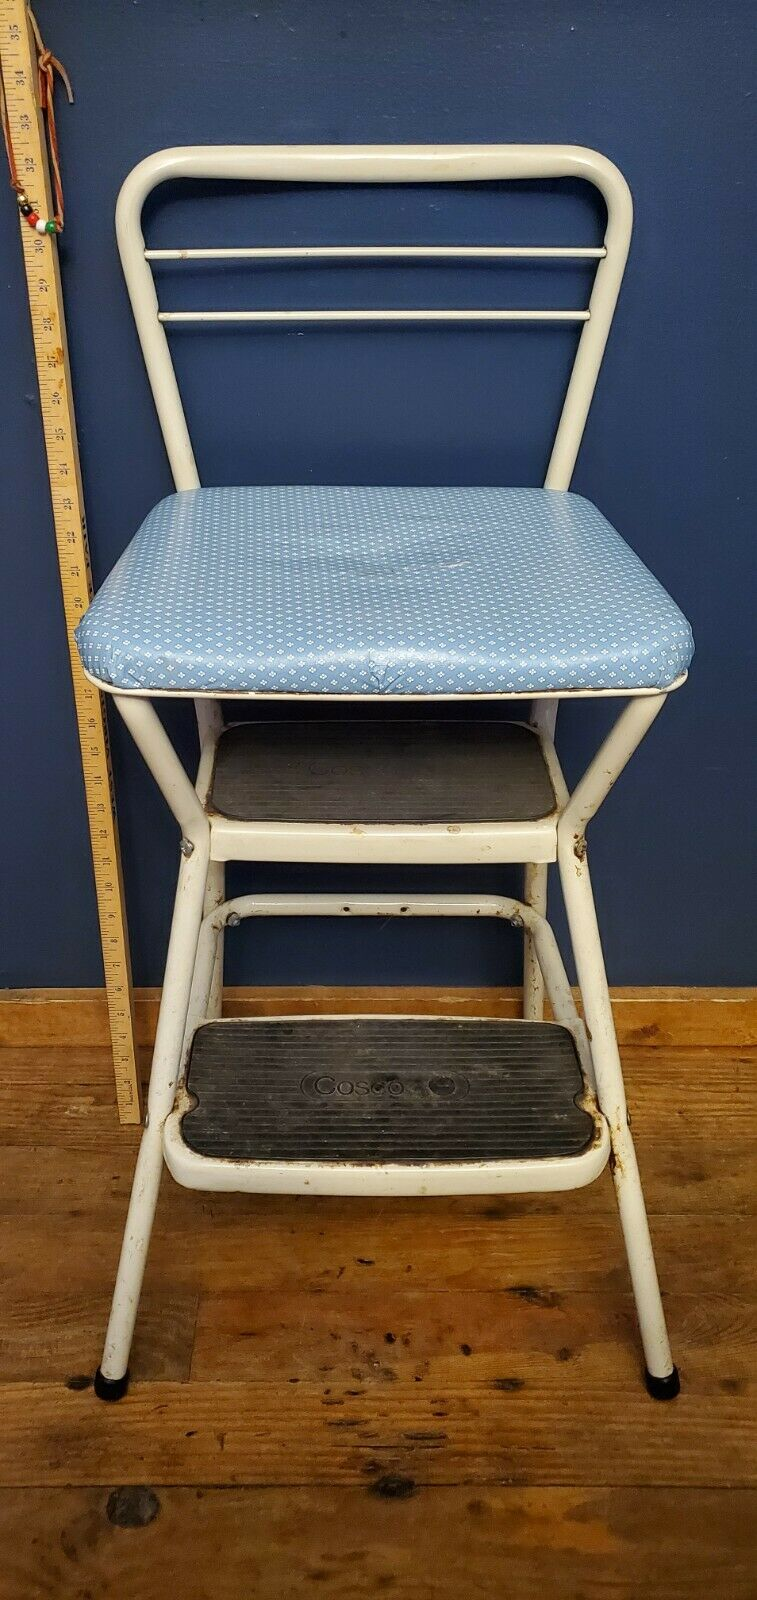 Cosco 11 130wht Chair Step Stool White For Sale Online Ebay